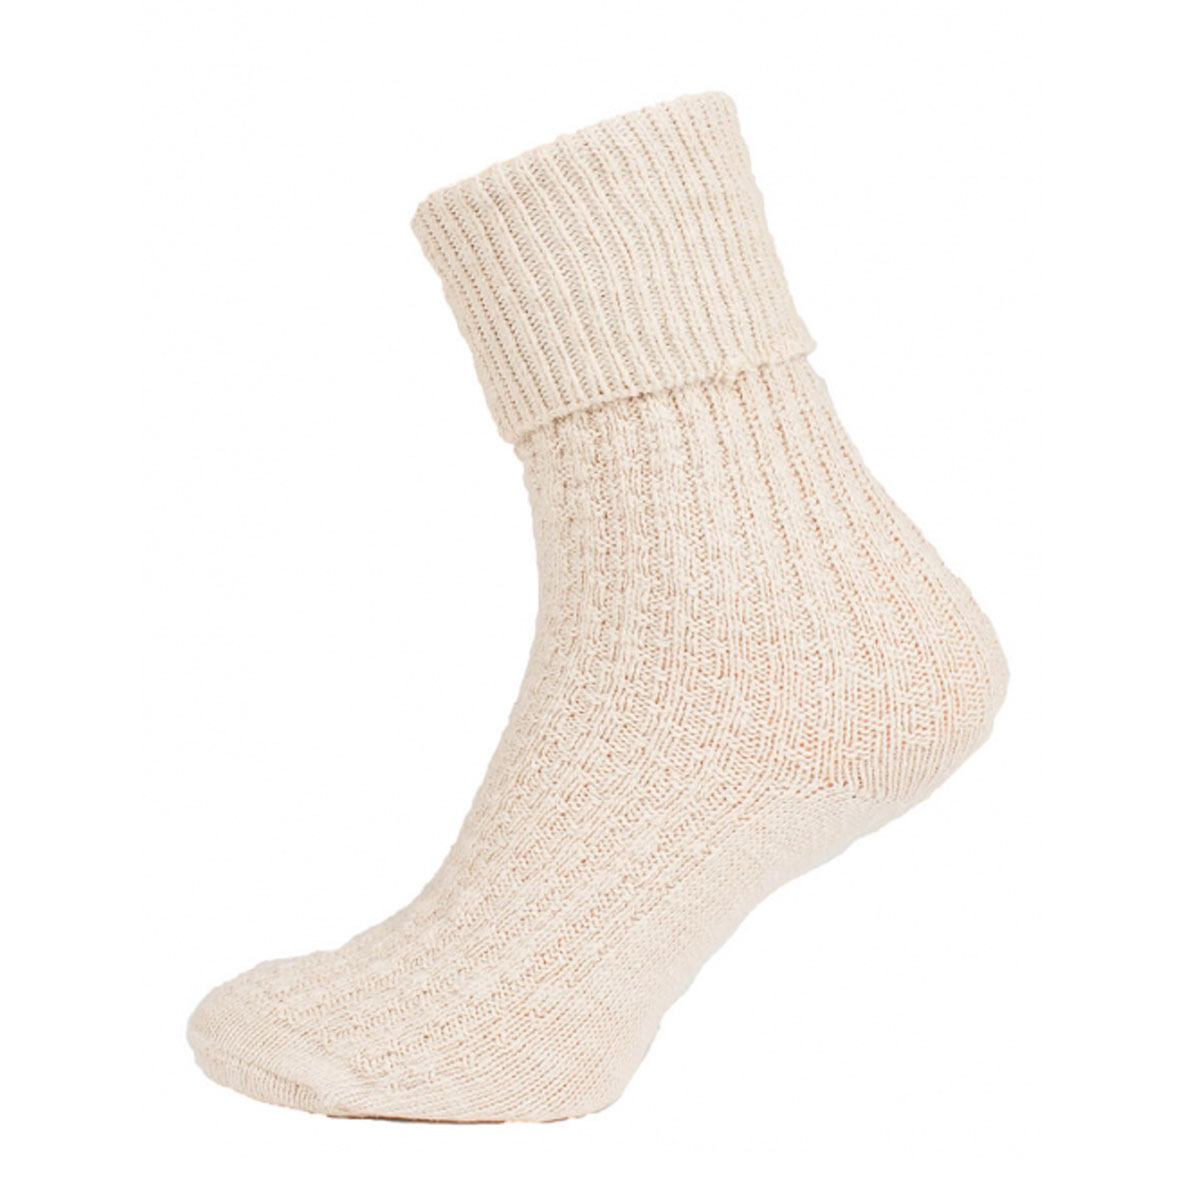 SIMPLE LIGHT BROWN FEMALE SOCKS